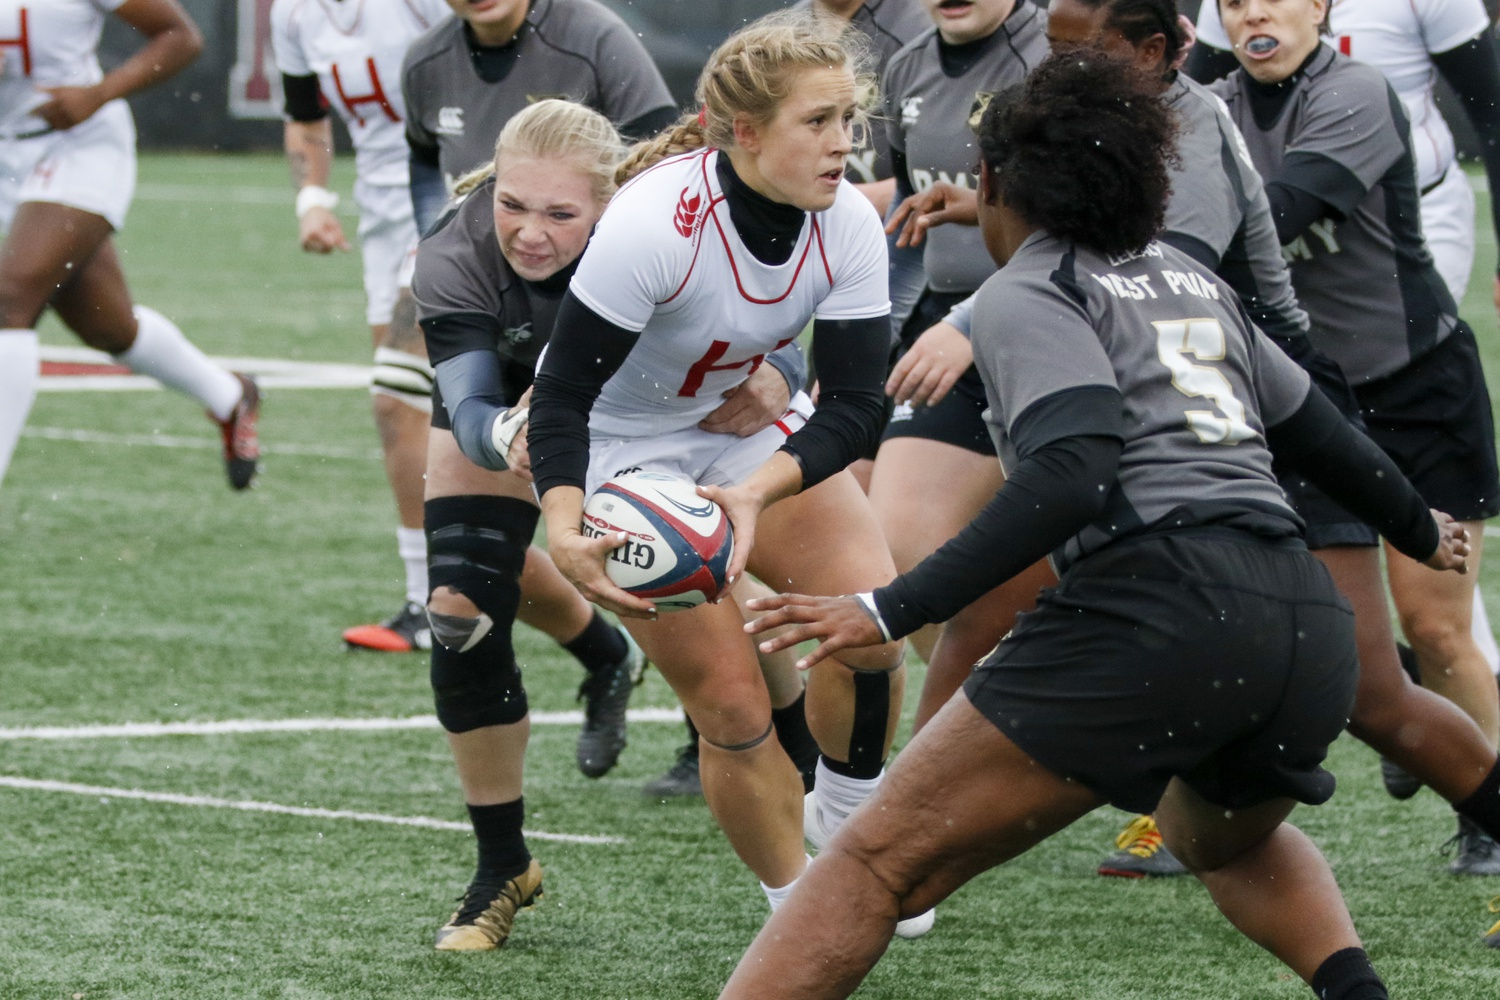 Co-captain Cassidy Bargell looks to evade tacklers in the 2019 National Championship against Army West Point. Bargell accounted for 10 points in Harvard's dismantling of Mount Saint Mary's.